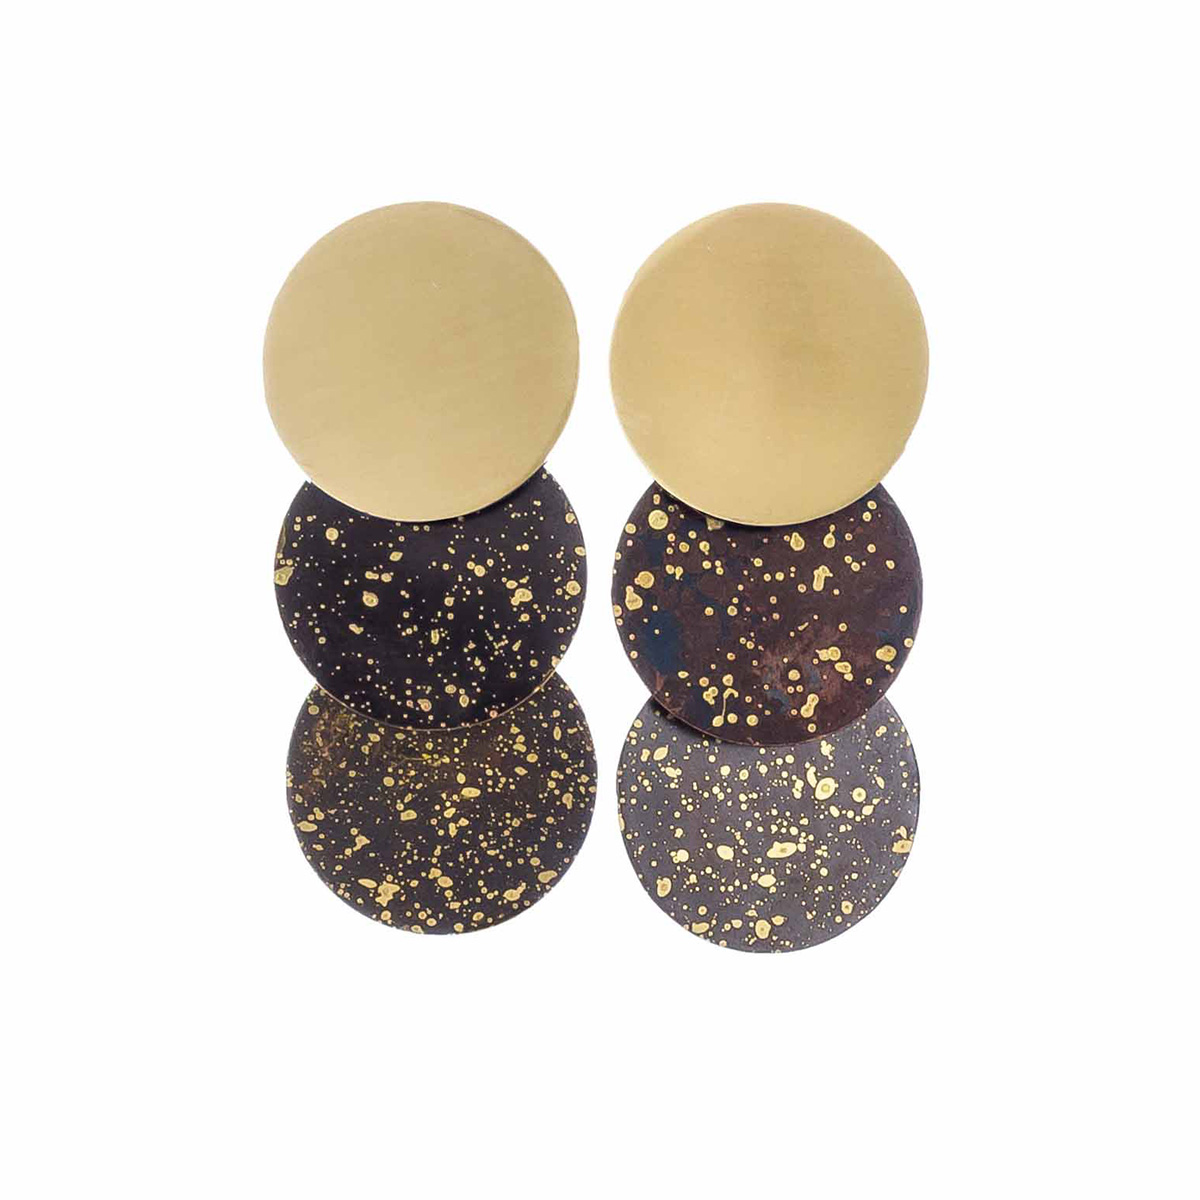 Black speck circles stud earrings by Sibilia